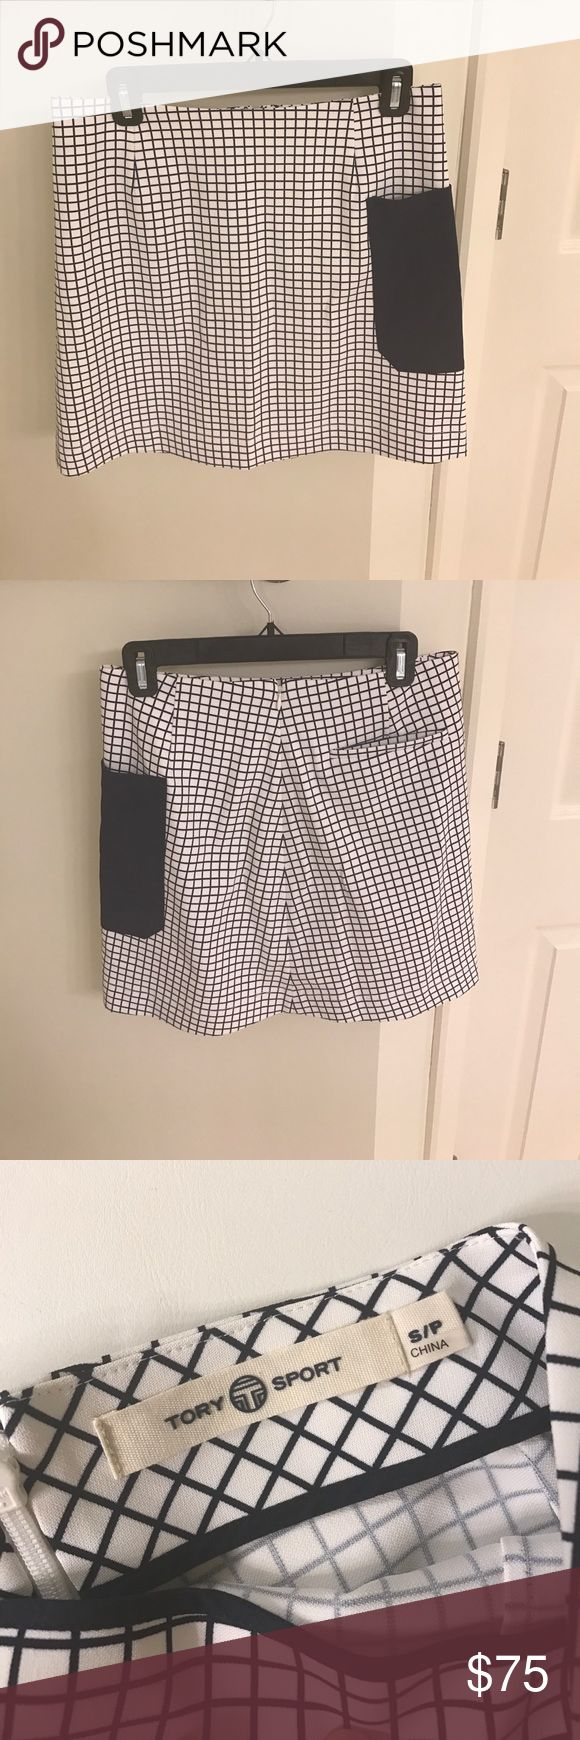 NWOT Tory Burch Tory Sport skirt size S/P NWOT Tory Sport golf skirt (could also be worn just as a miniskirt!)- navy & white, size S/P Tory Burch Skirts